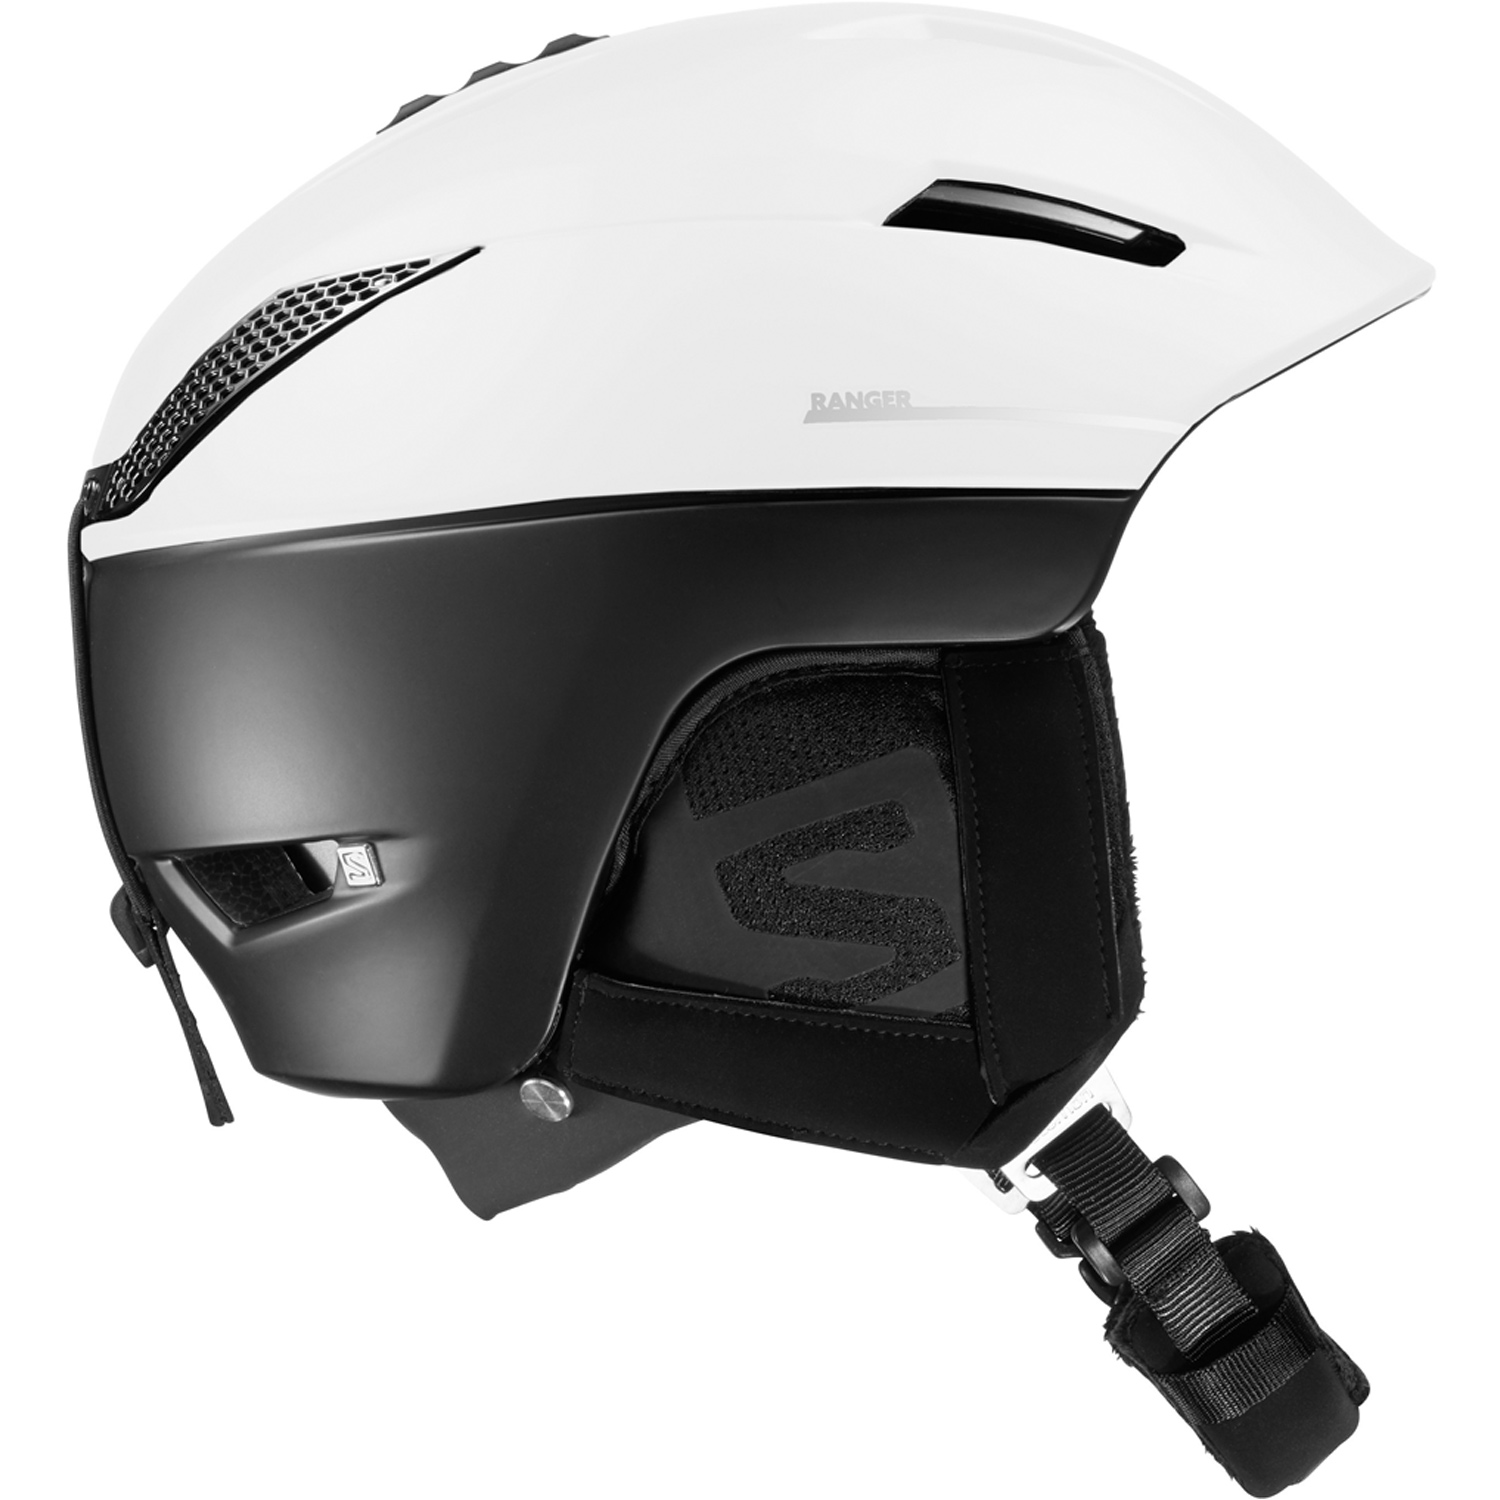 Salomon RANGER² C. AIR Skihelm